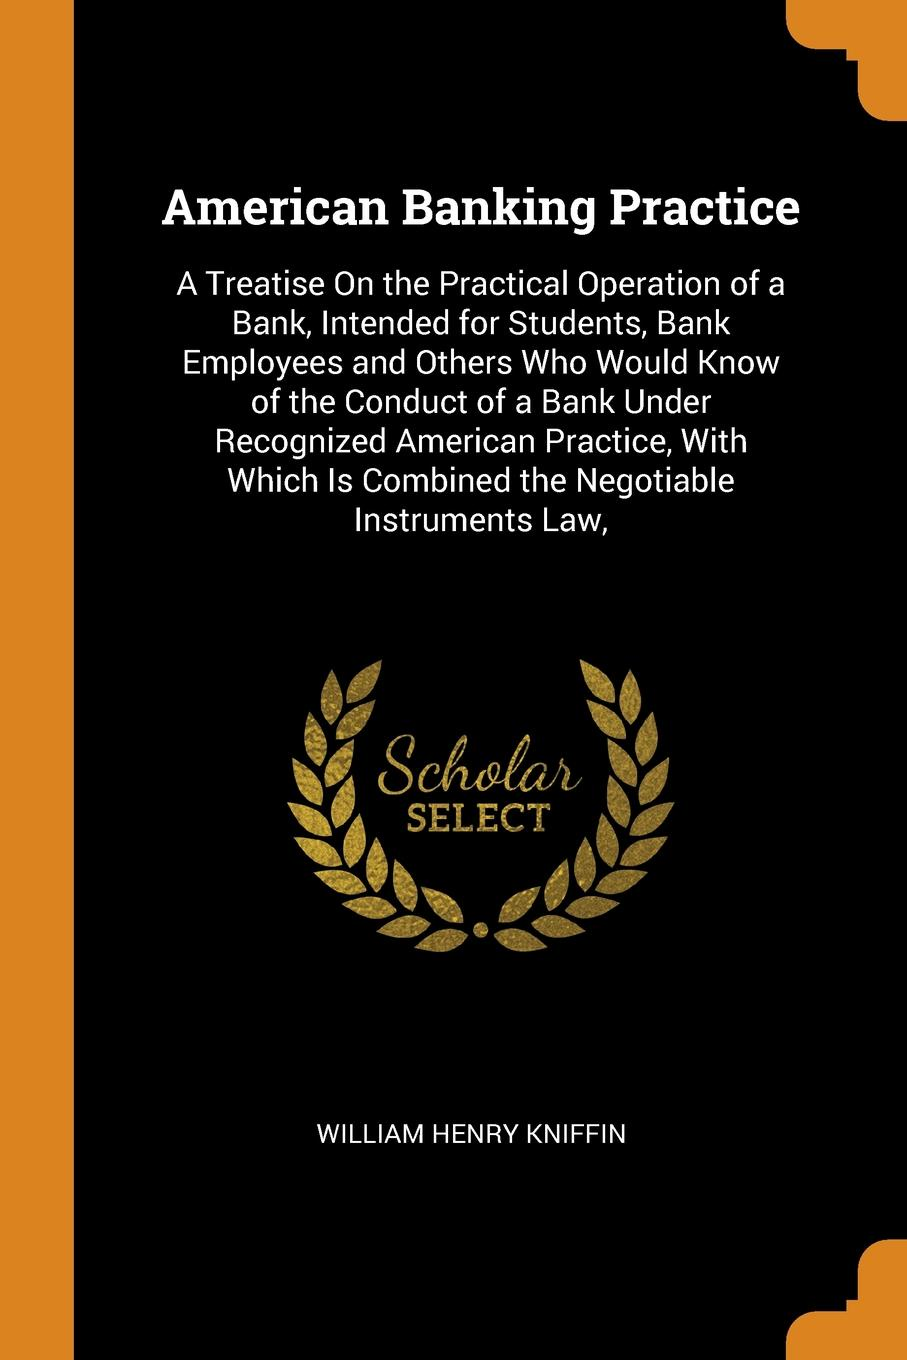 "American Banking Practice. A Treatise On the Practical Operation of a Bank, Intended for Students, Bank Employees and Others Who Would Know of the Conduct of a Bank Under Recognized American Practice, With Which Is Combined the Negotiable Instrume... Книга""American Banking Practice. A Treatise On the Practical..."